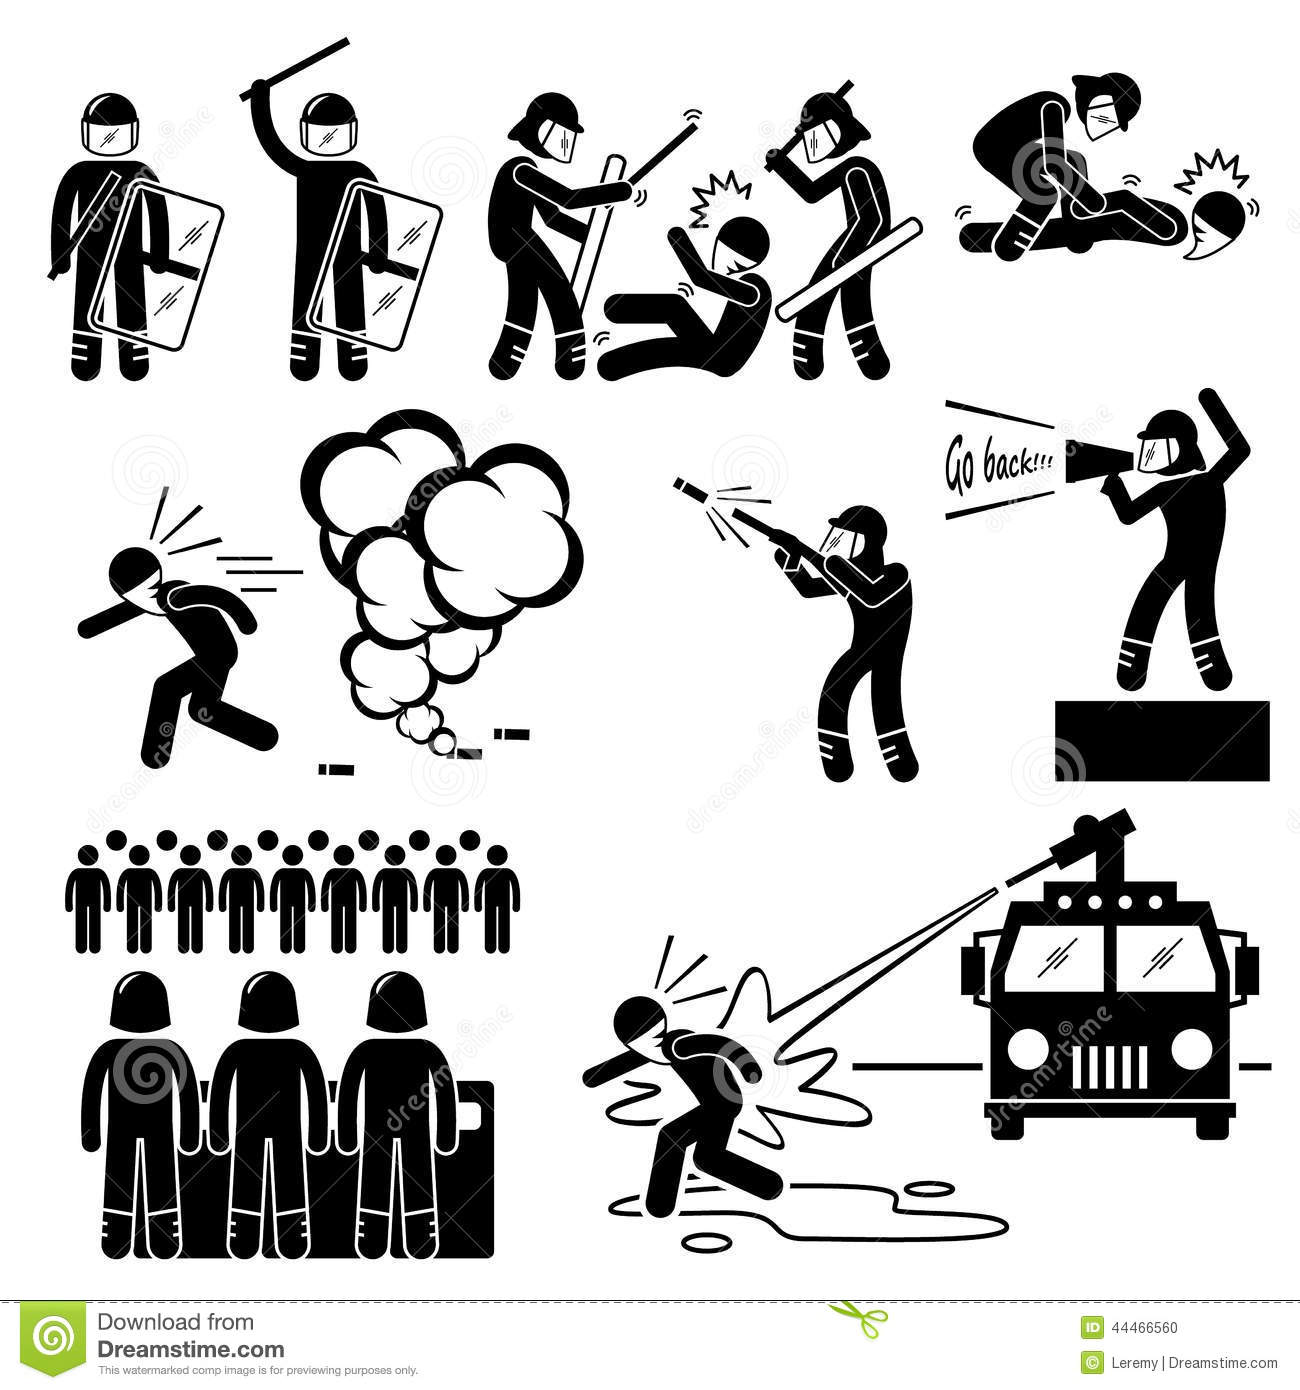 Filtering also Stock Illustration Riot Police Cliparts Set Human Pictogram Representing Ways Controlling Rioters Includes Beating Arrest Tear Gas Image44466560 further The Tri Cl  Sanitary Flange Dimension Guide further Symbols iso likewise Schema  elektriciteit. on water process icon